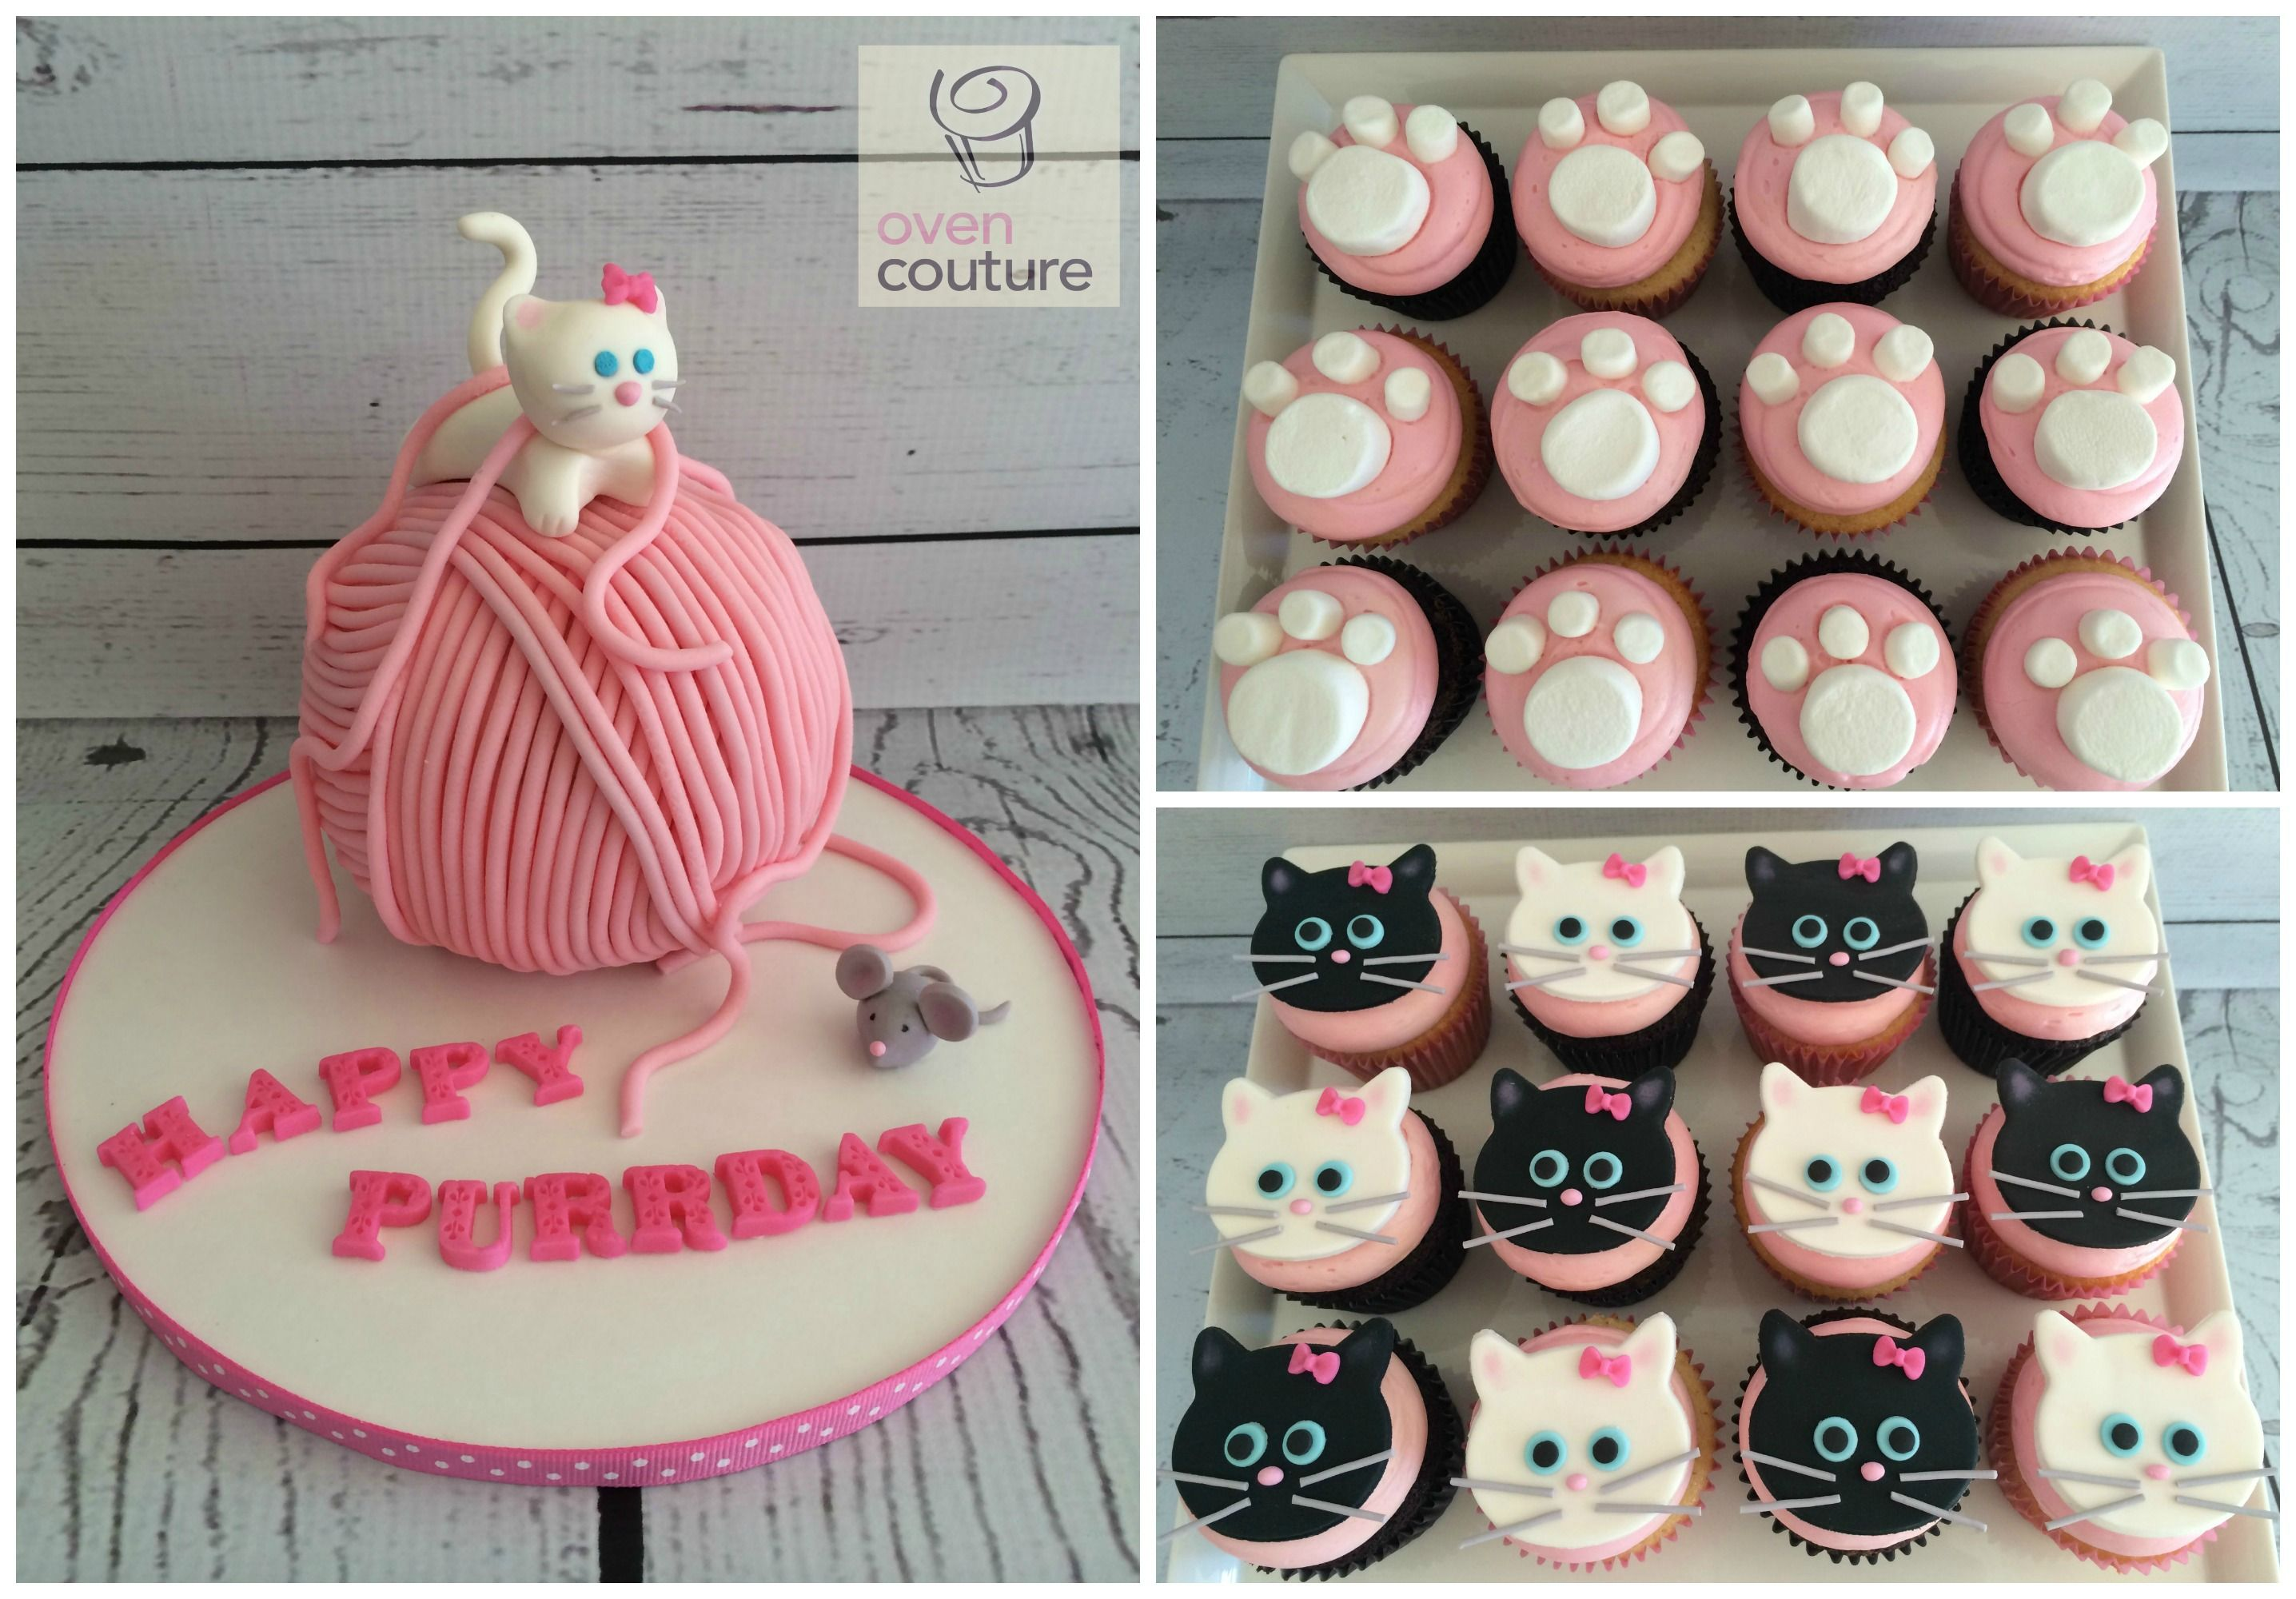 Kitten Party Cake & Cupcakes by Oven Couture https://www.facebook.com/Oven-Couture-Smallish-Confection-Perfection-239221606110260/